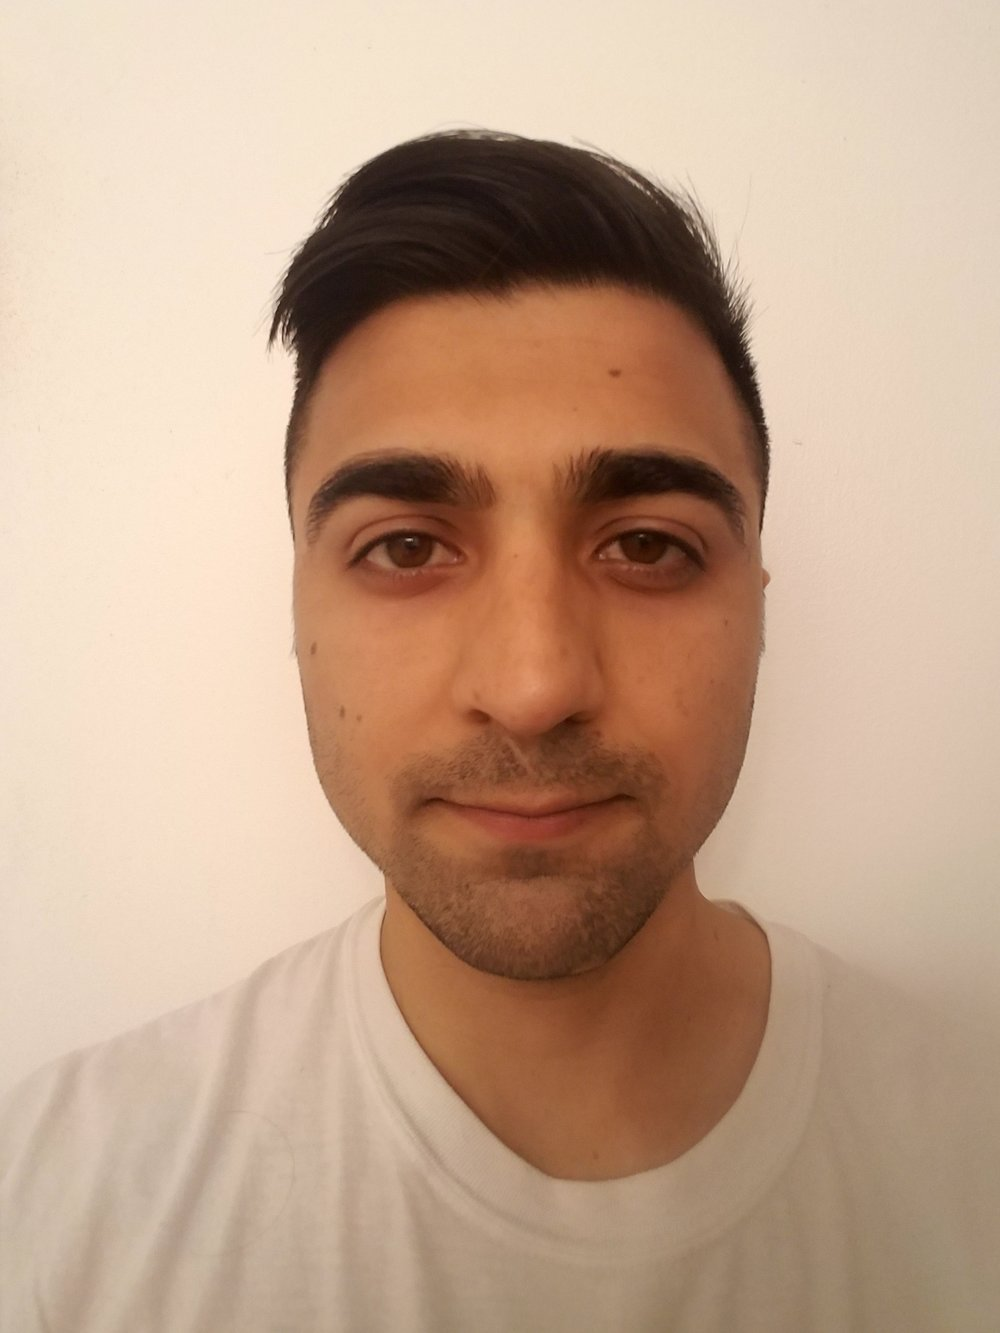 Sultan Baz - Sultan graduated from UC Berkeley with a degree in psychology. He is currently pursuing entrance into medical school, and is interested in the connection between biology and psychology. He also hopes to pursue a career in Sports Medicine after medical school.